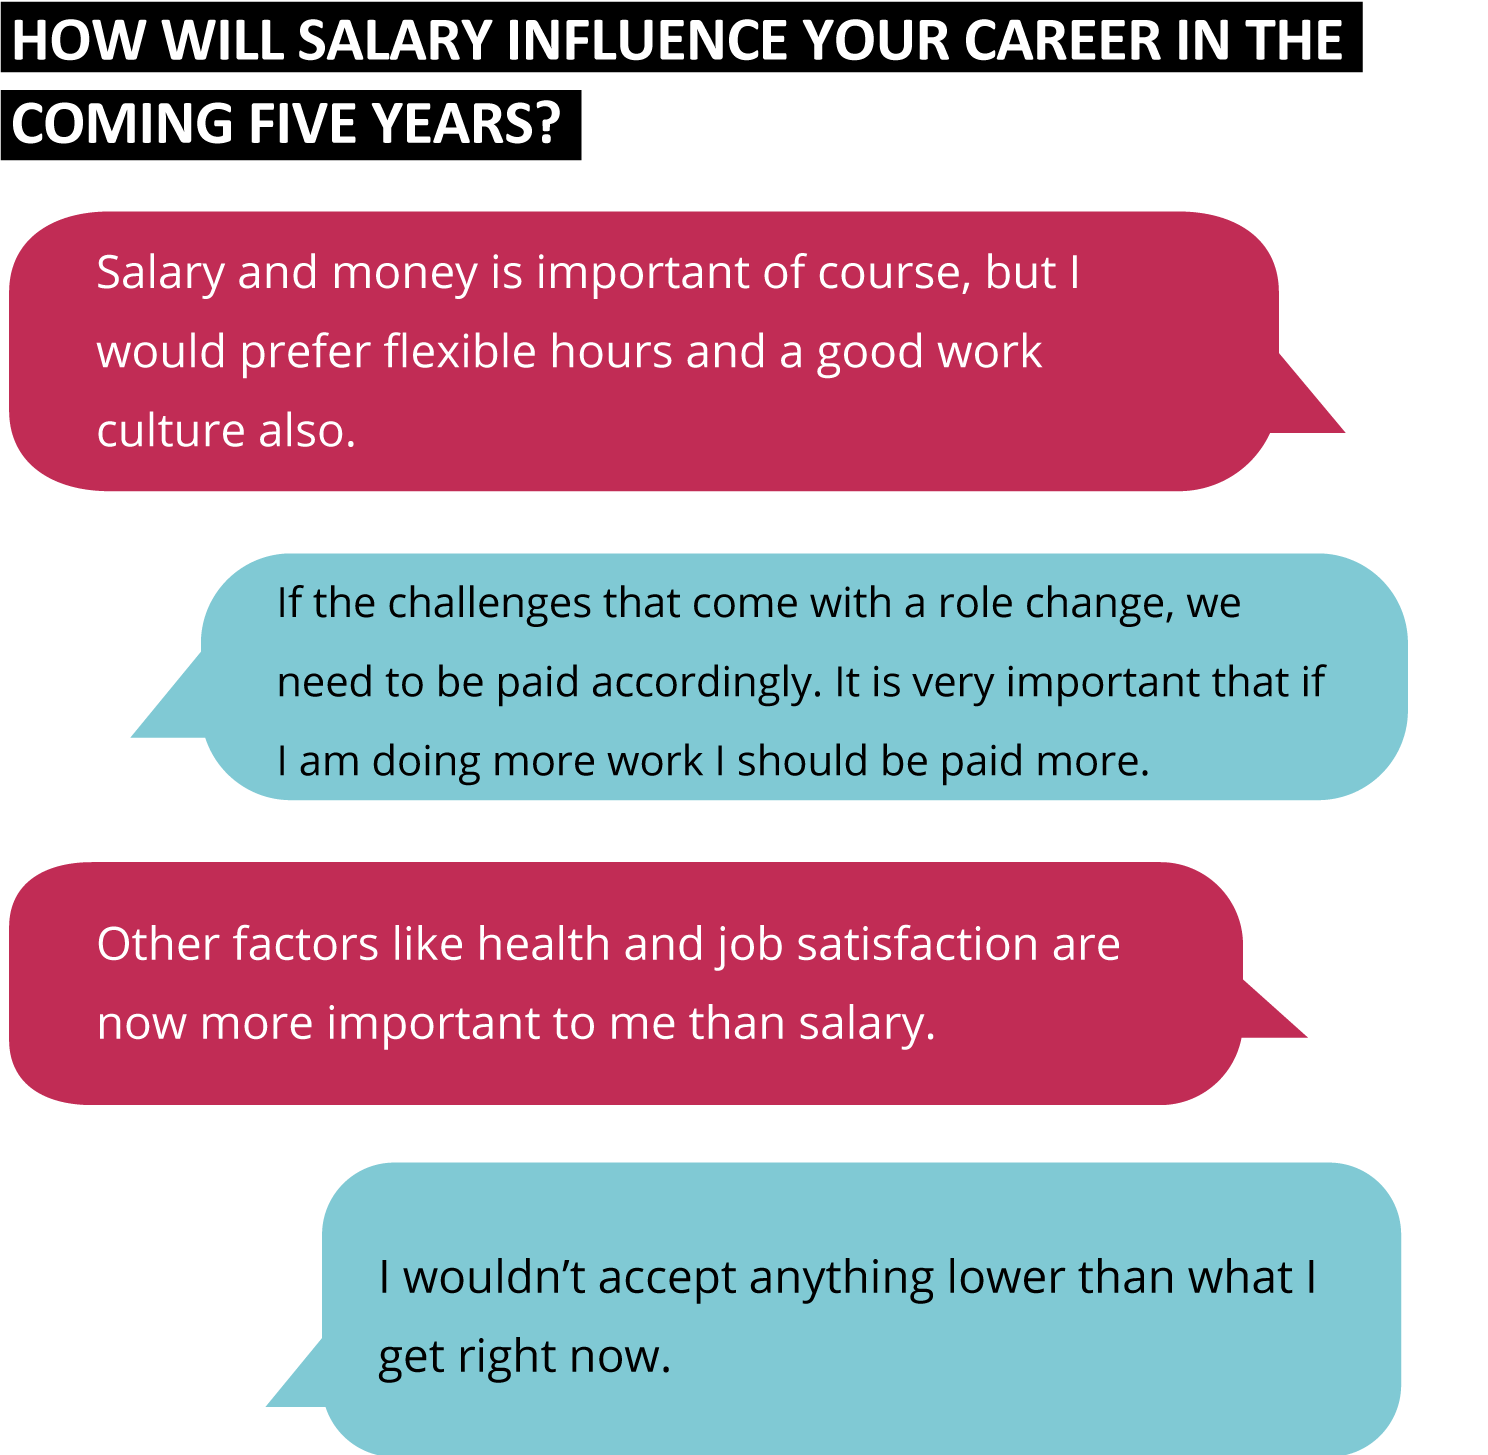 How will salary influence your career in the coming five years?